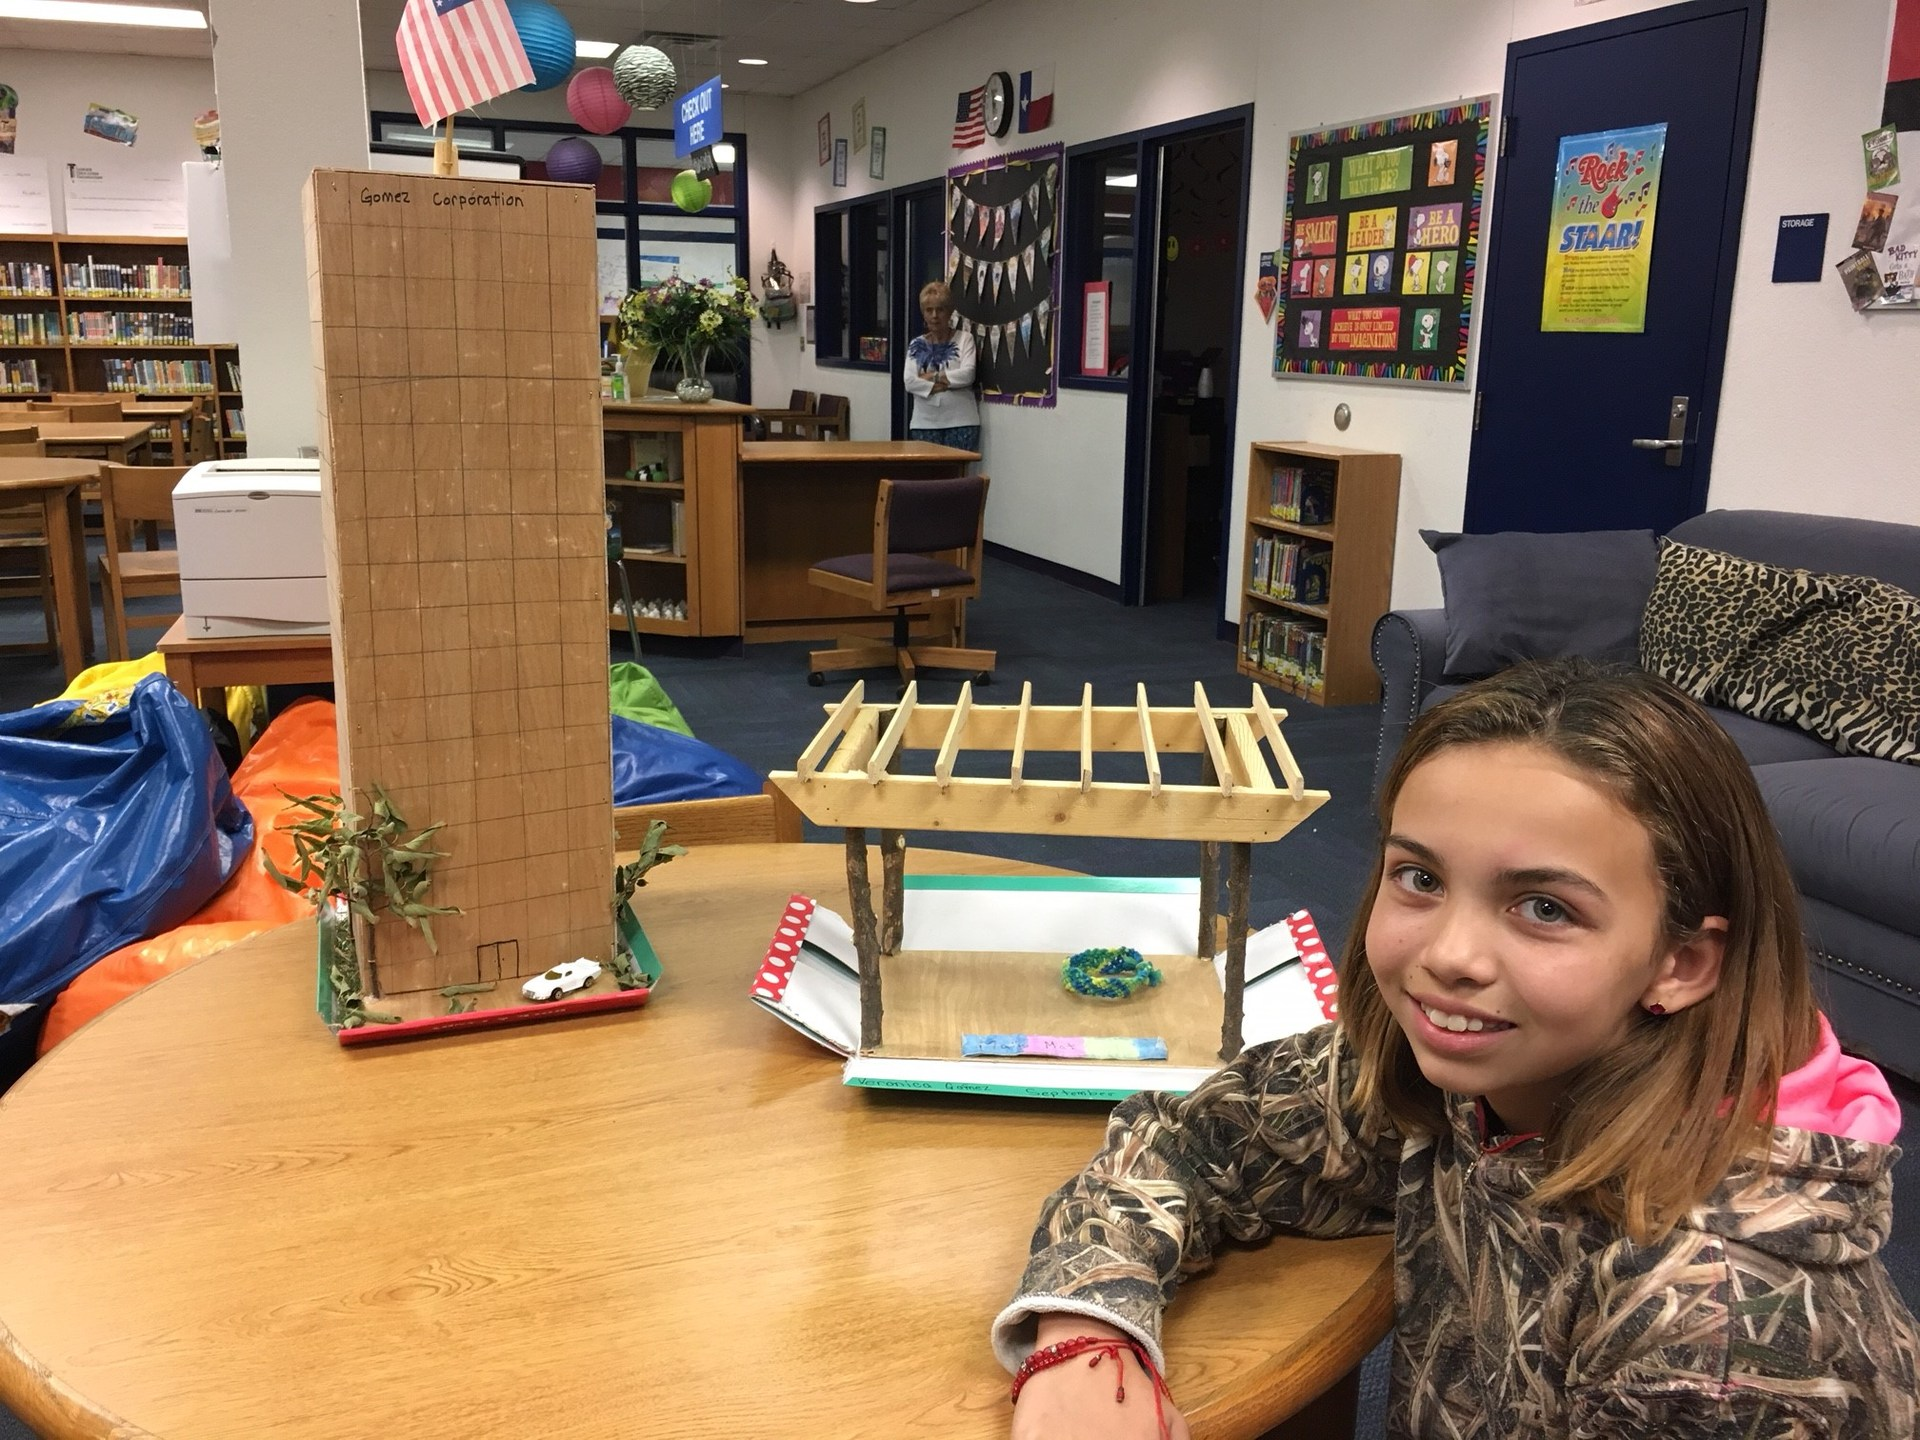 Veronica G. shows off her MakerSpace projects